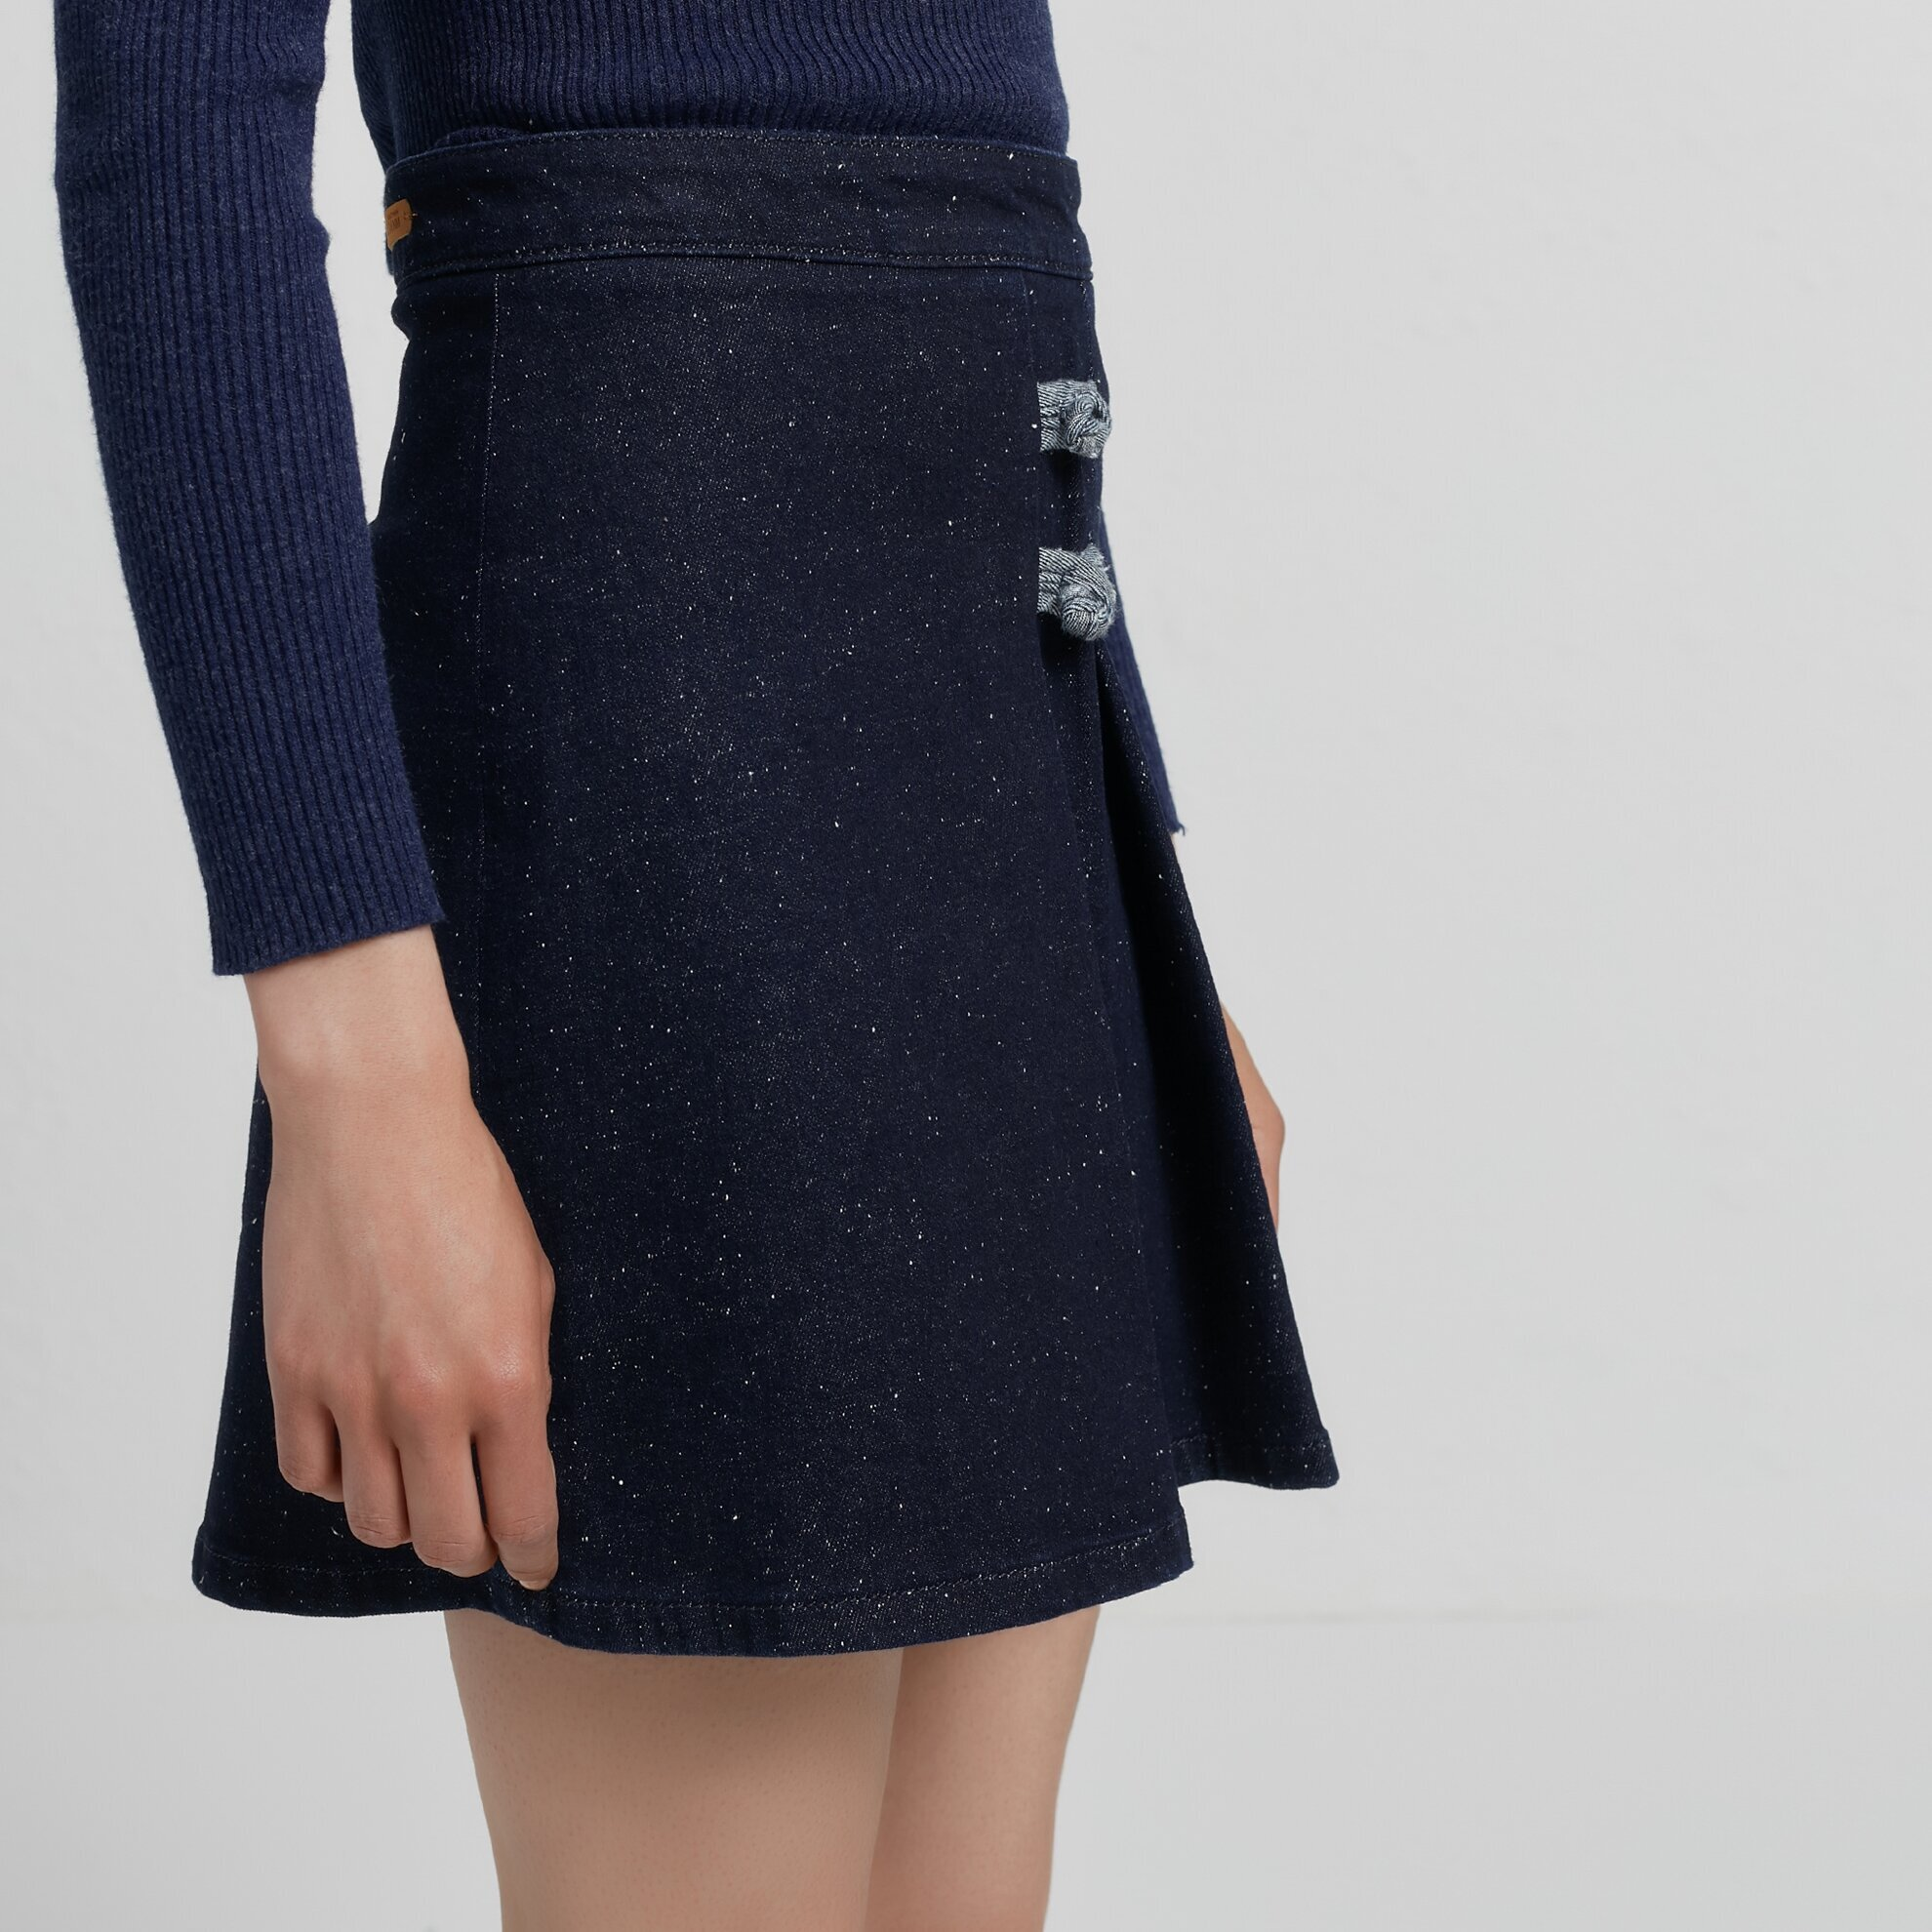 Japanese Closure Skirt